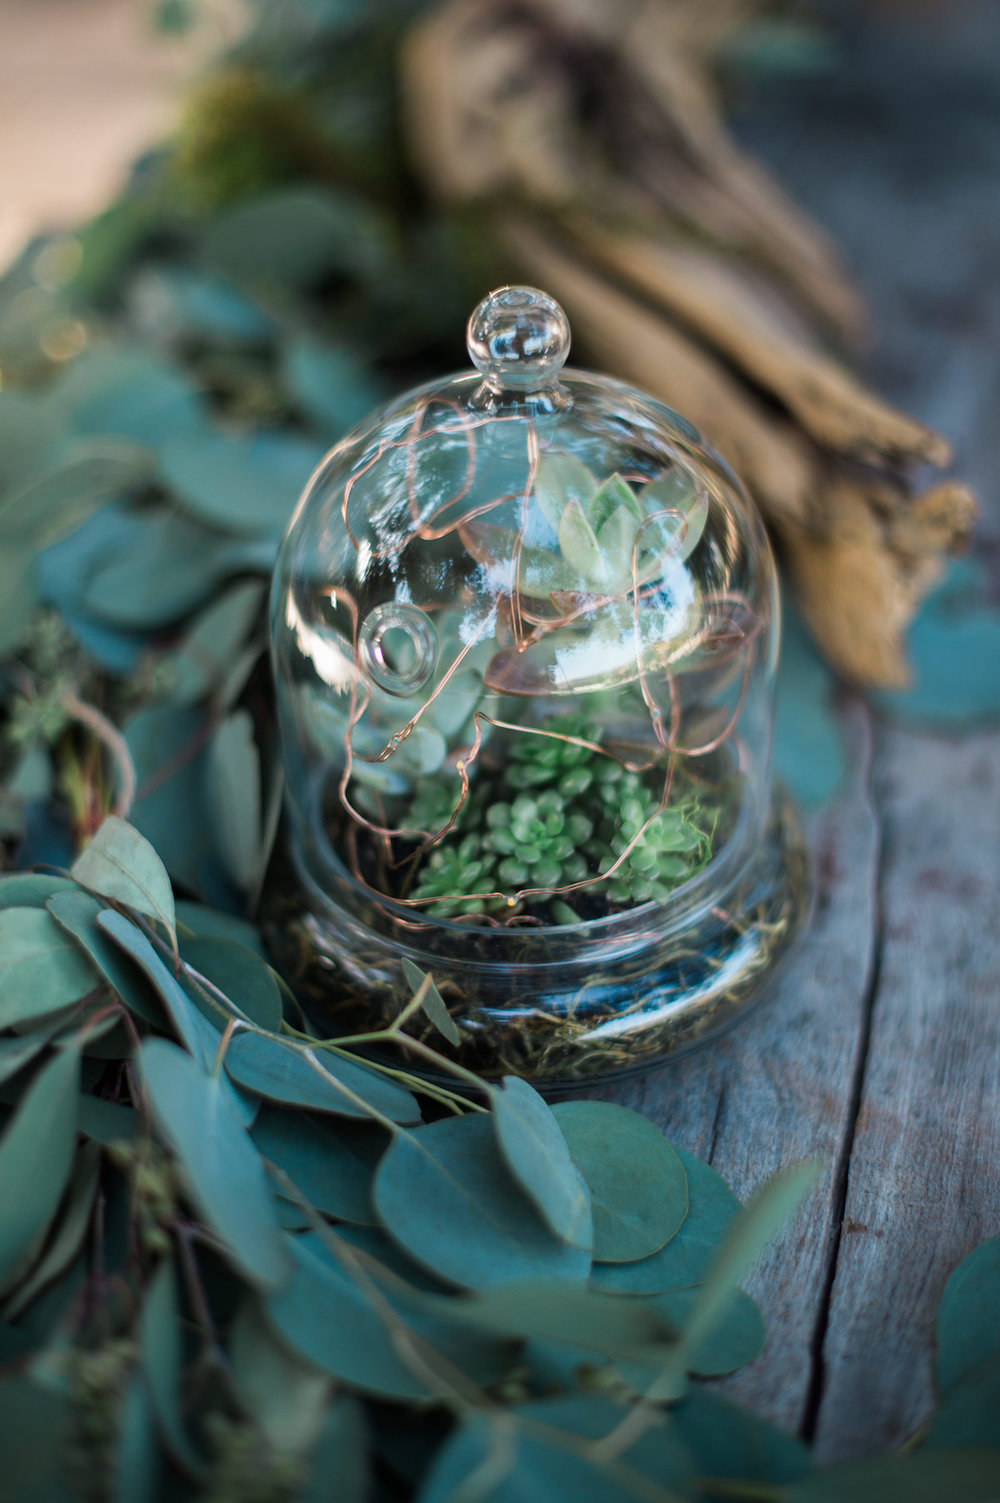 circle oak ranch farm wedding california succulents in glass jar surrounded by leafy branch